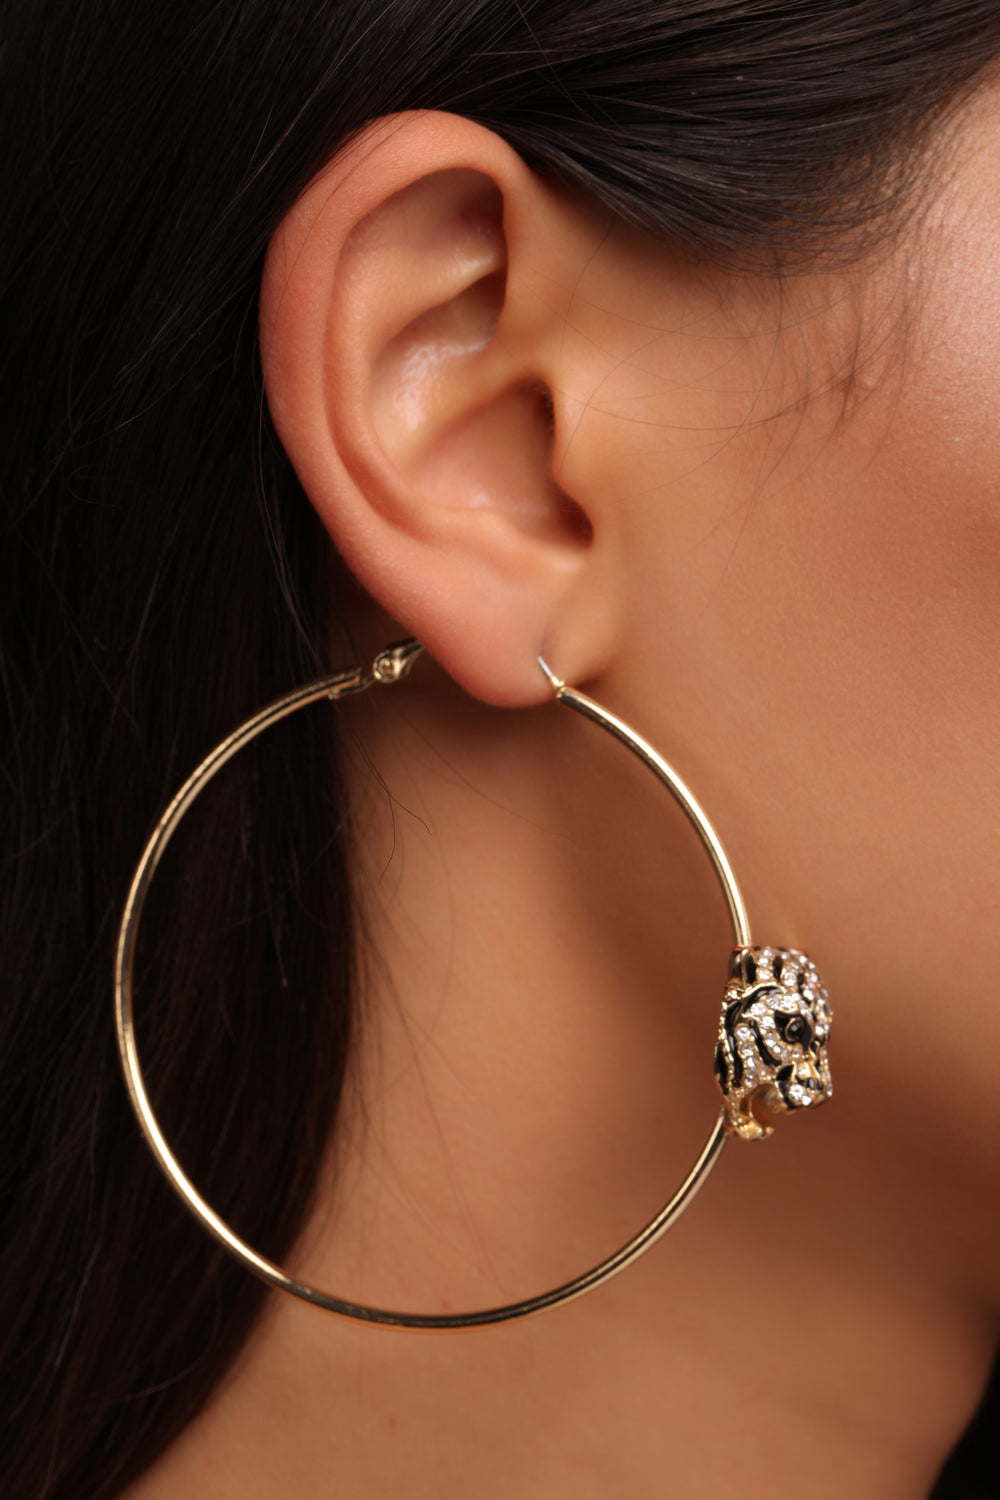 Easy Tiger Hoop Earrings - Gold/Black